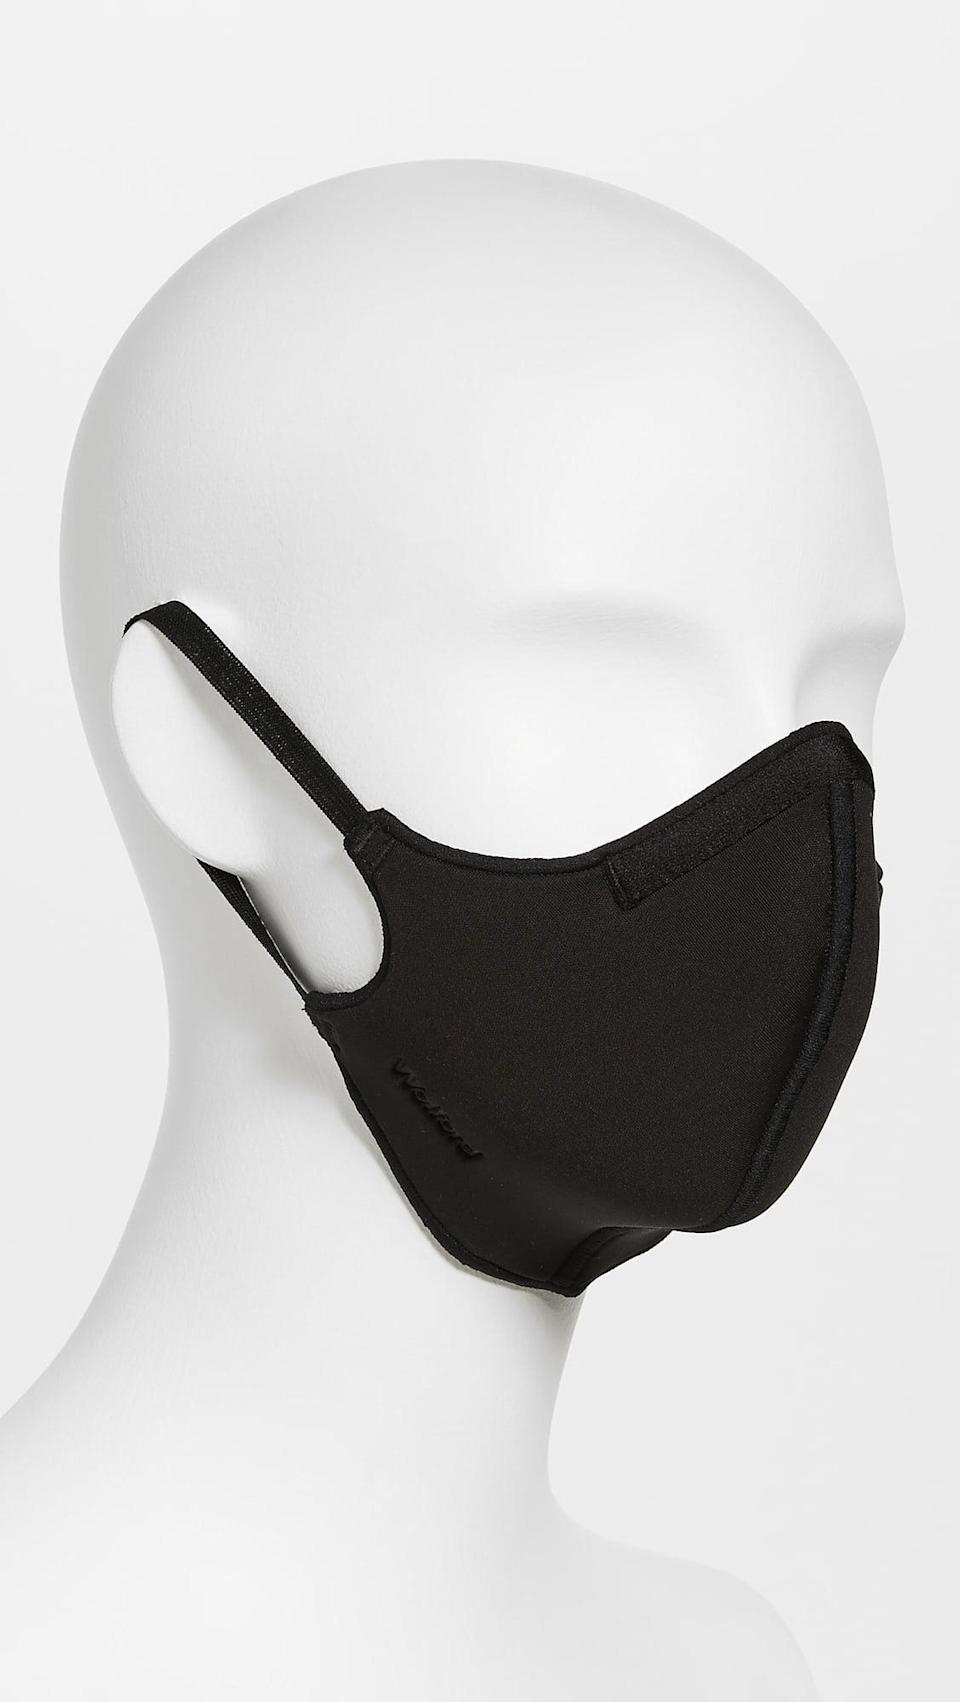 <p>You'll love this <span>Wolford Care Face Covering</span> ($35). Tt's an editor favorite because it's comfortable and covered.</p>